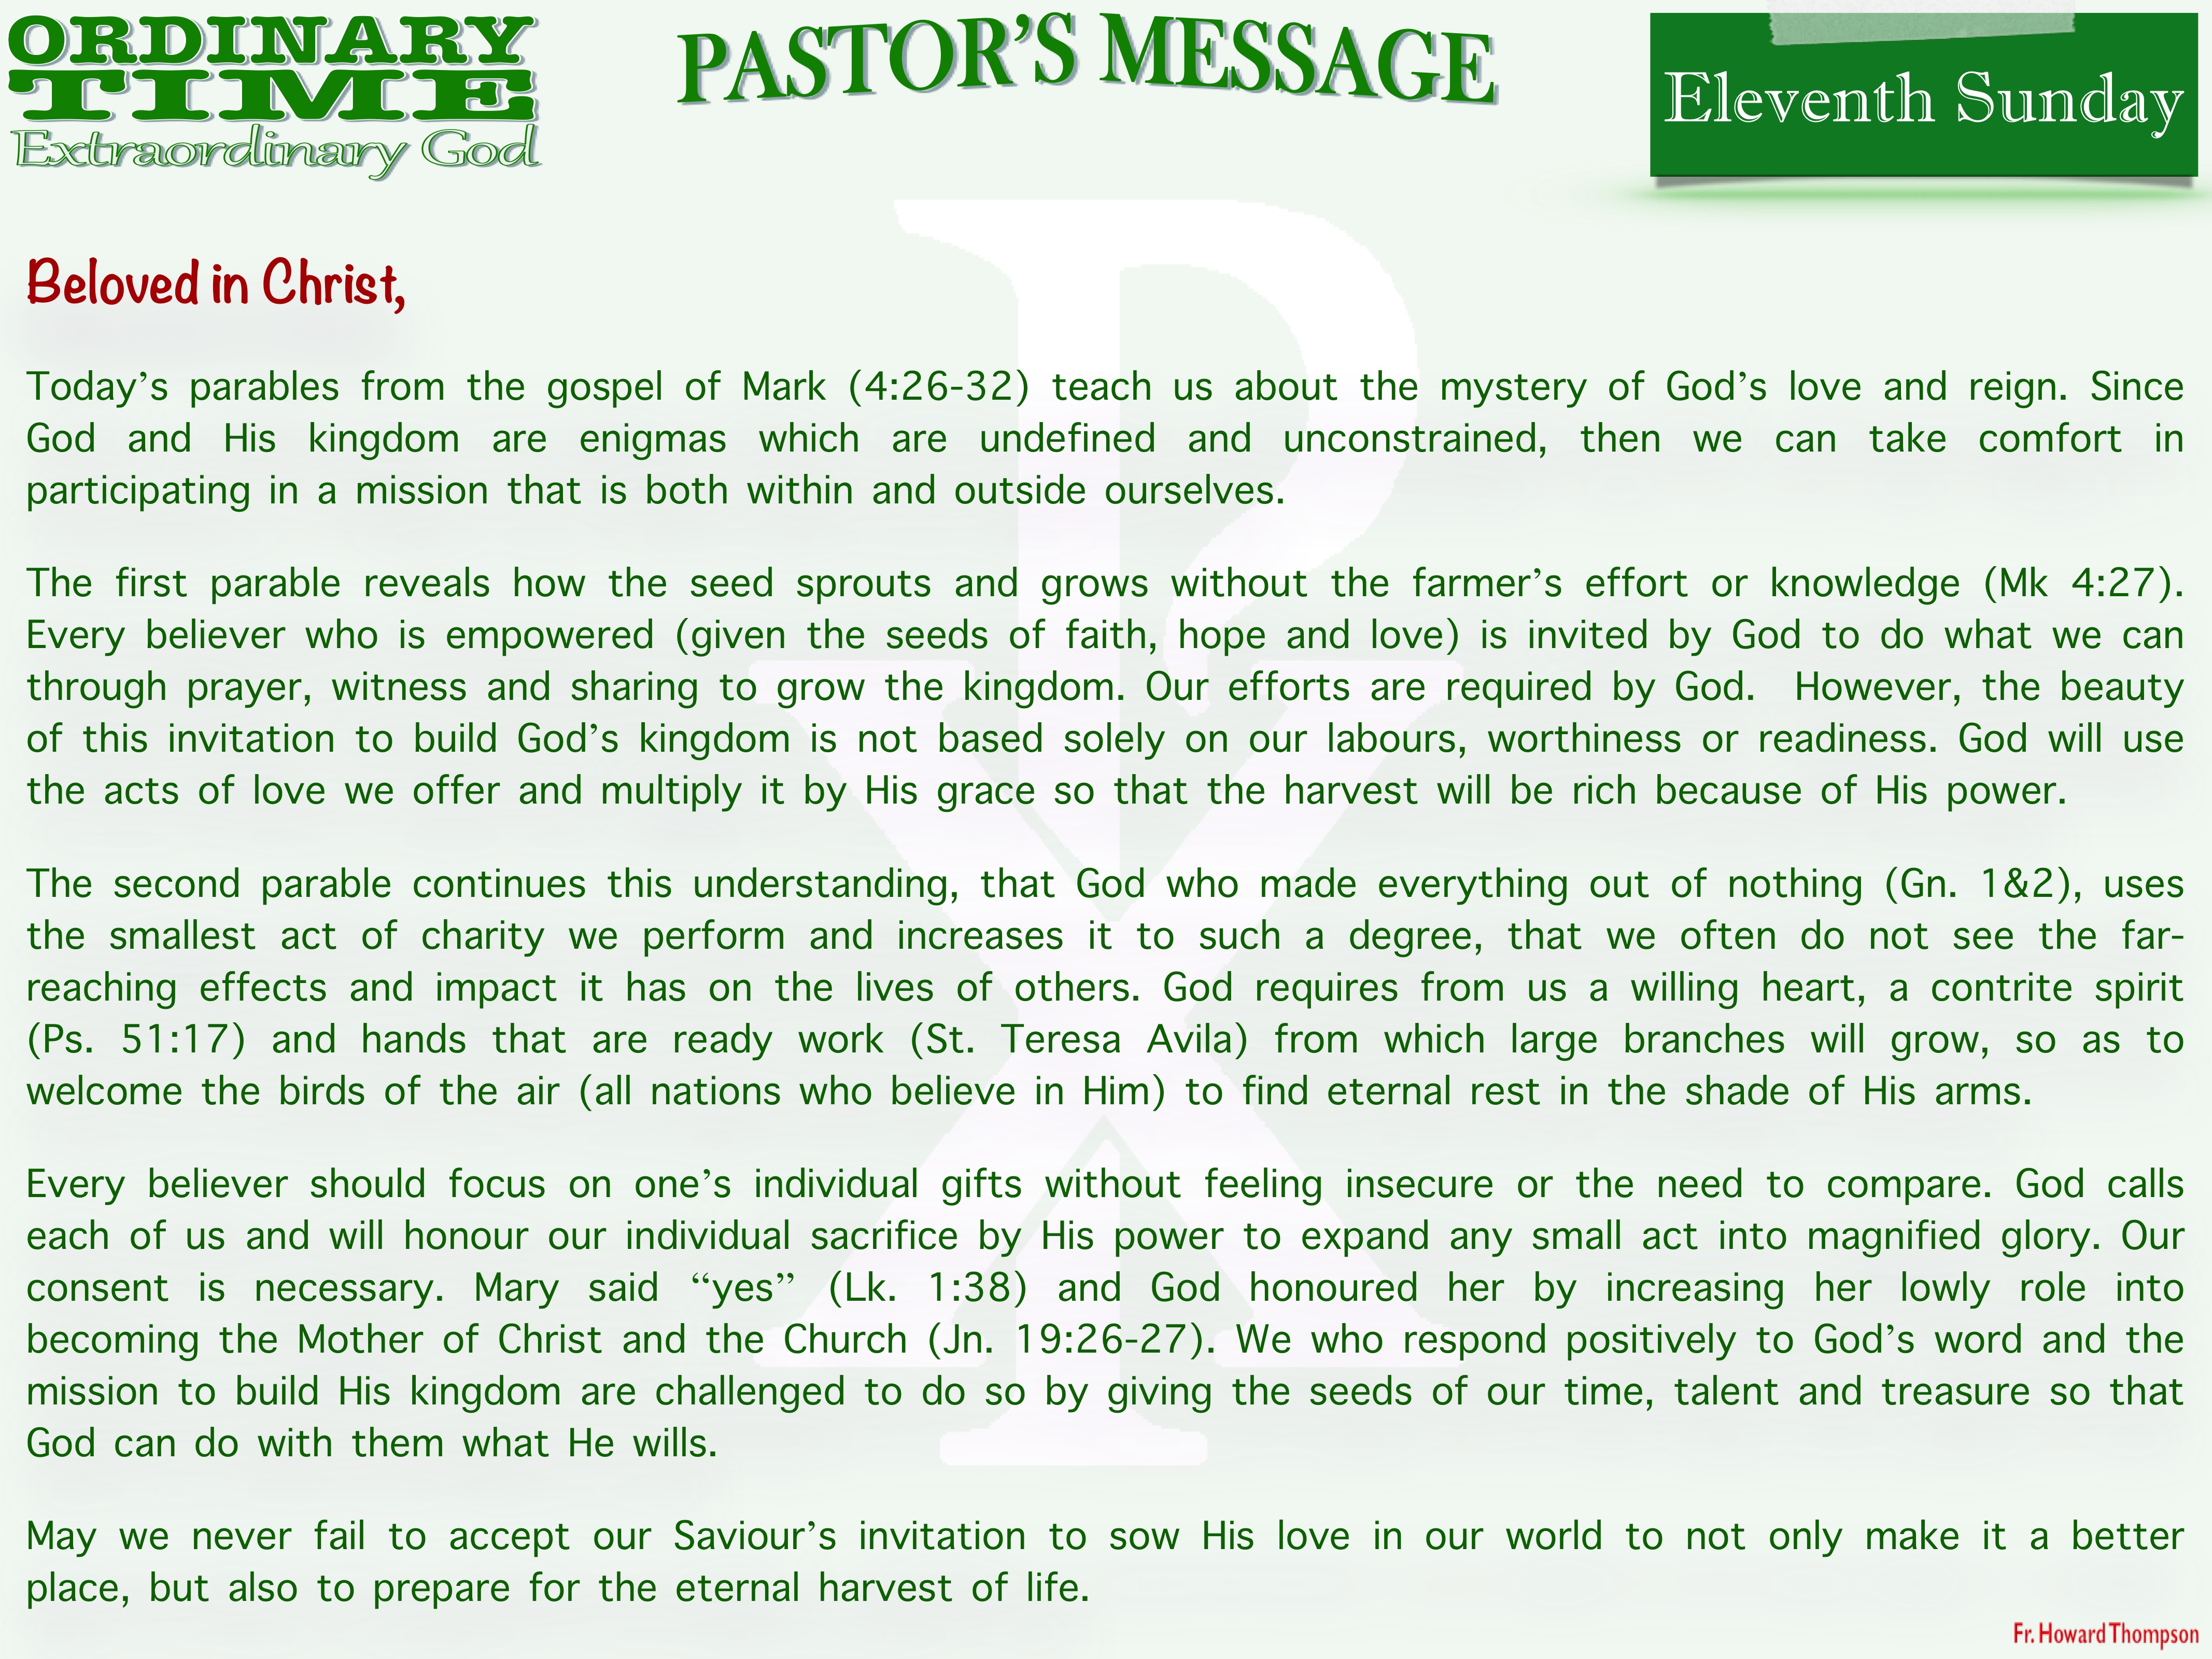 Pastor's Message - 20 Eleventh Sunday in Ordinary Time_001